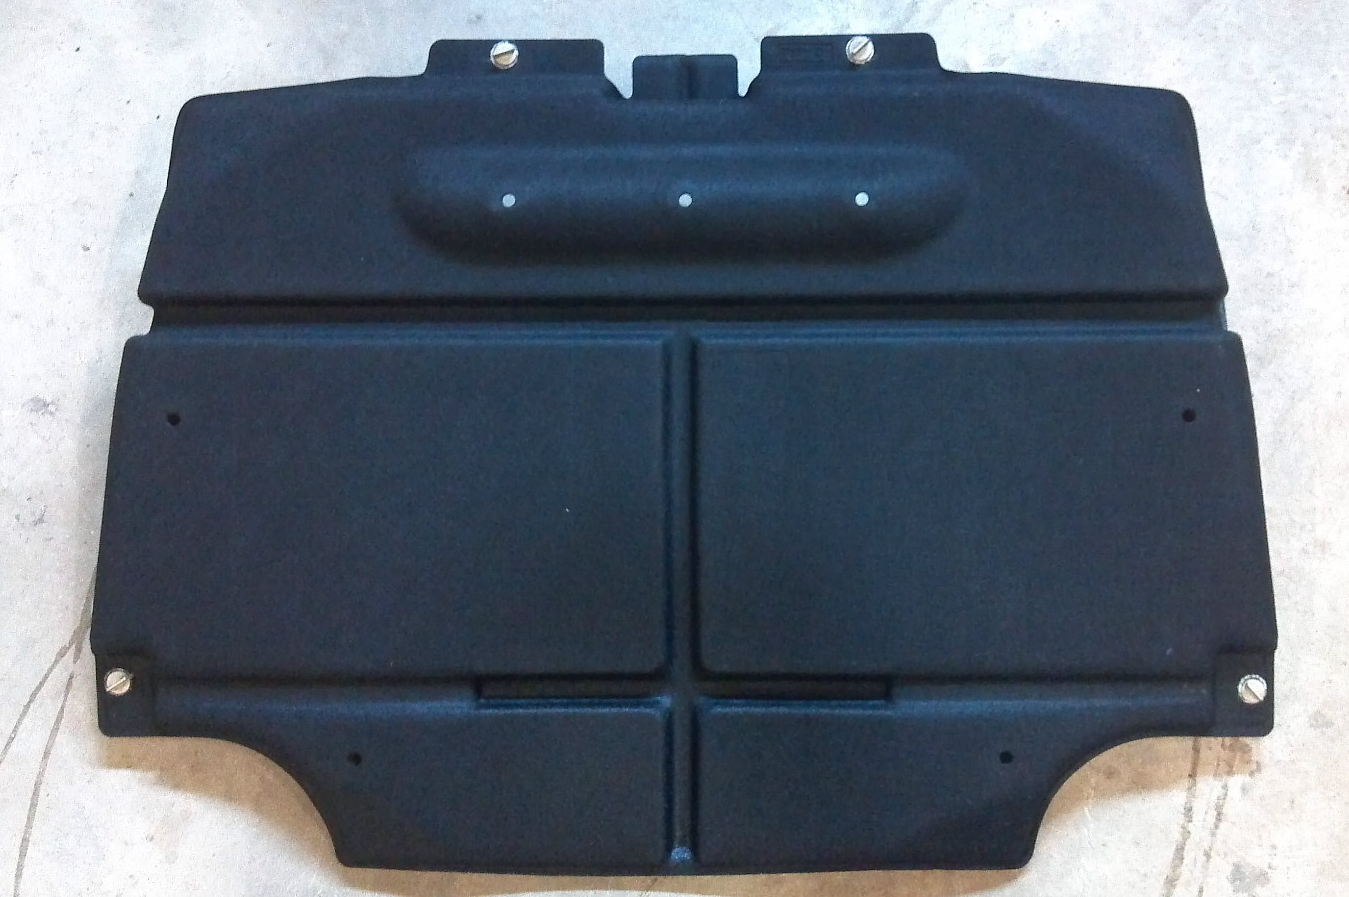 Index31 in addition Details Ford f150 raptor svt 6 2 411 ch supercrew 2012 toutes options a voir dans les bouches du rhone 13 488 additionally 824719 Post4 further What Stupid Plastic Cardboard Looking Skid Plate Under My Fx4 Transmission 176574 also Bushwacker Pocket Fender Flares Installed 336877. on 04 ford f150 supercrew